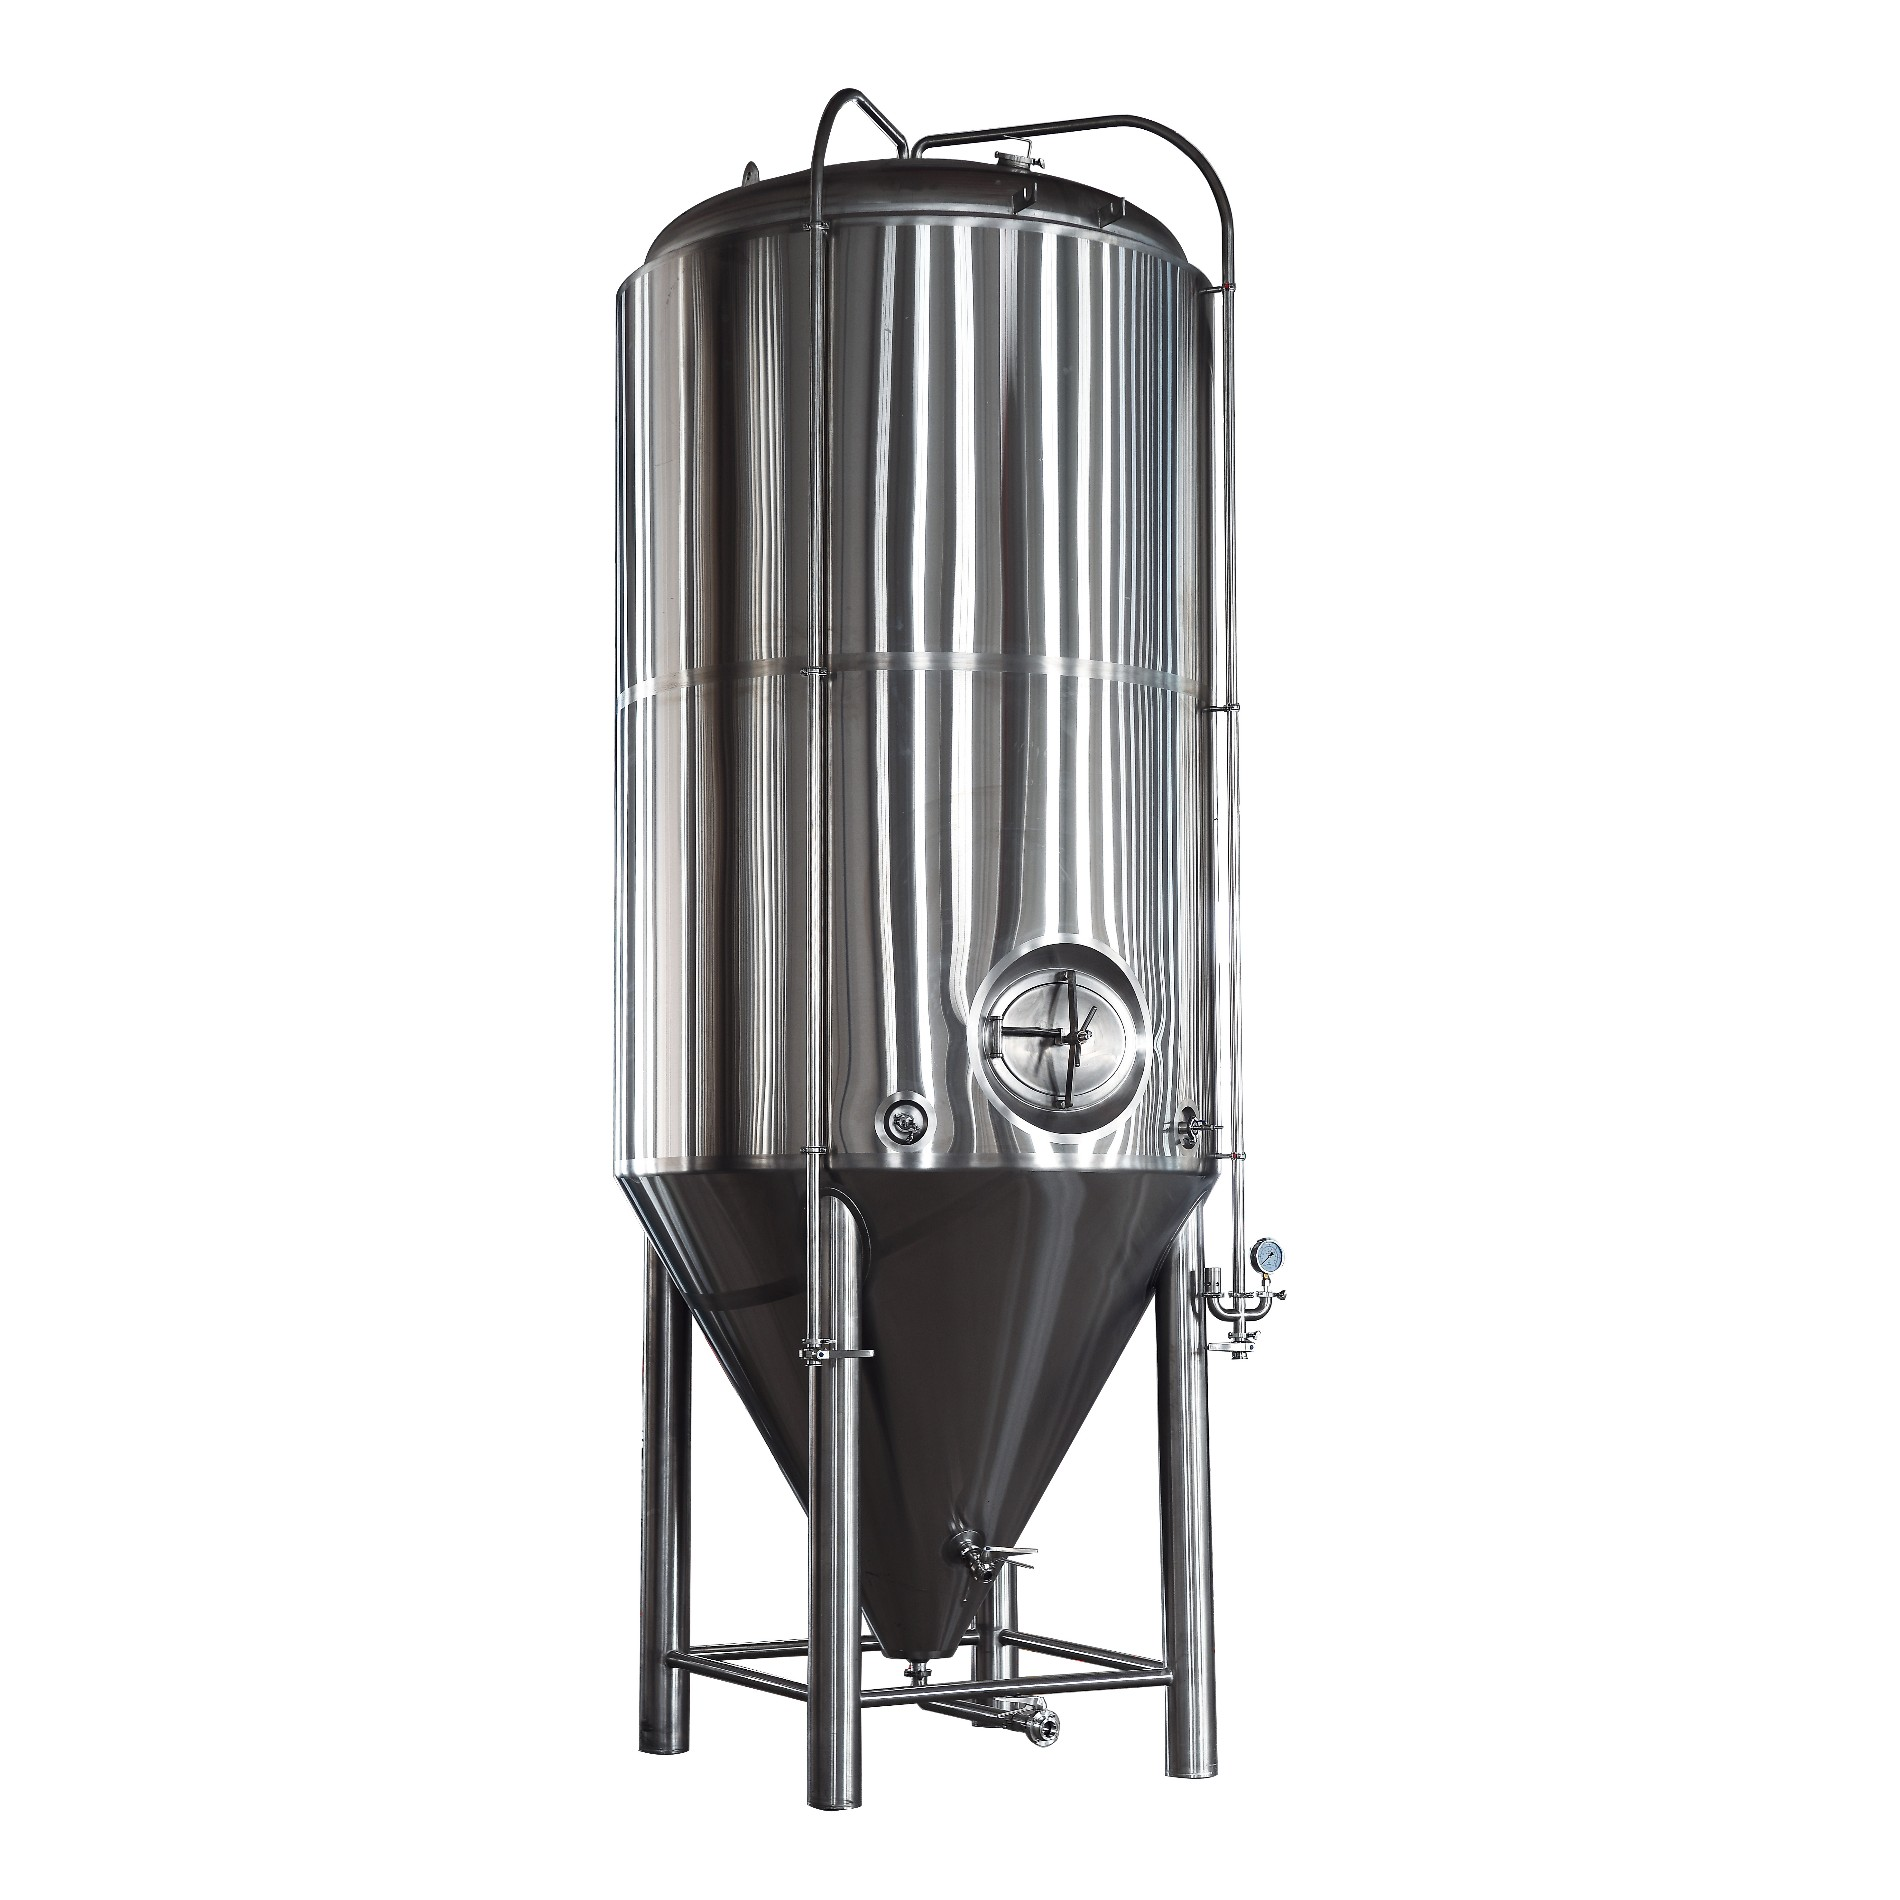 5000L Conical Beer Fermenter Manufacturers, 5000L Conical Beer Fermenter Factory, Supply 5000L Conical Beer Fermenter